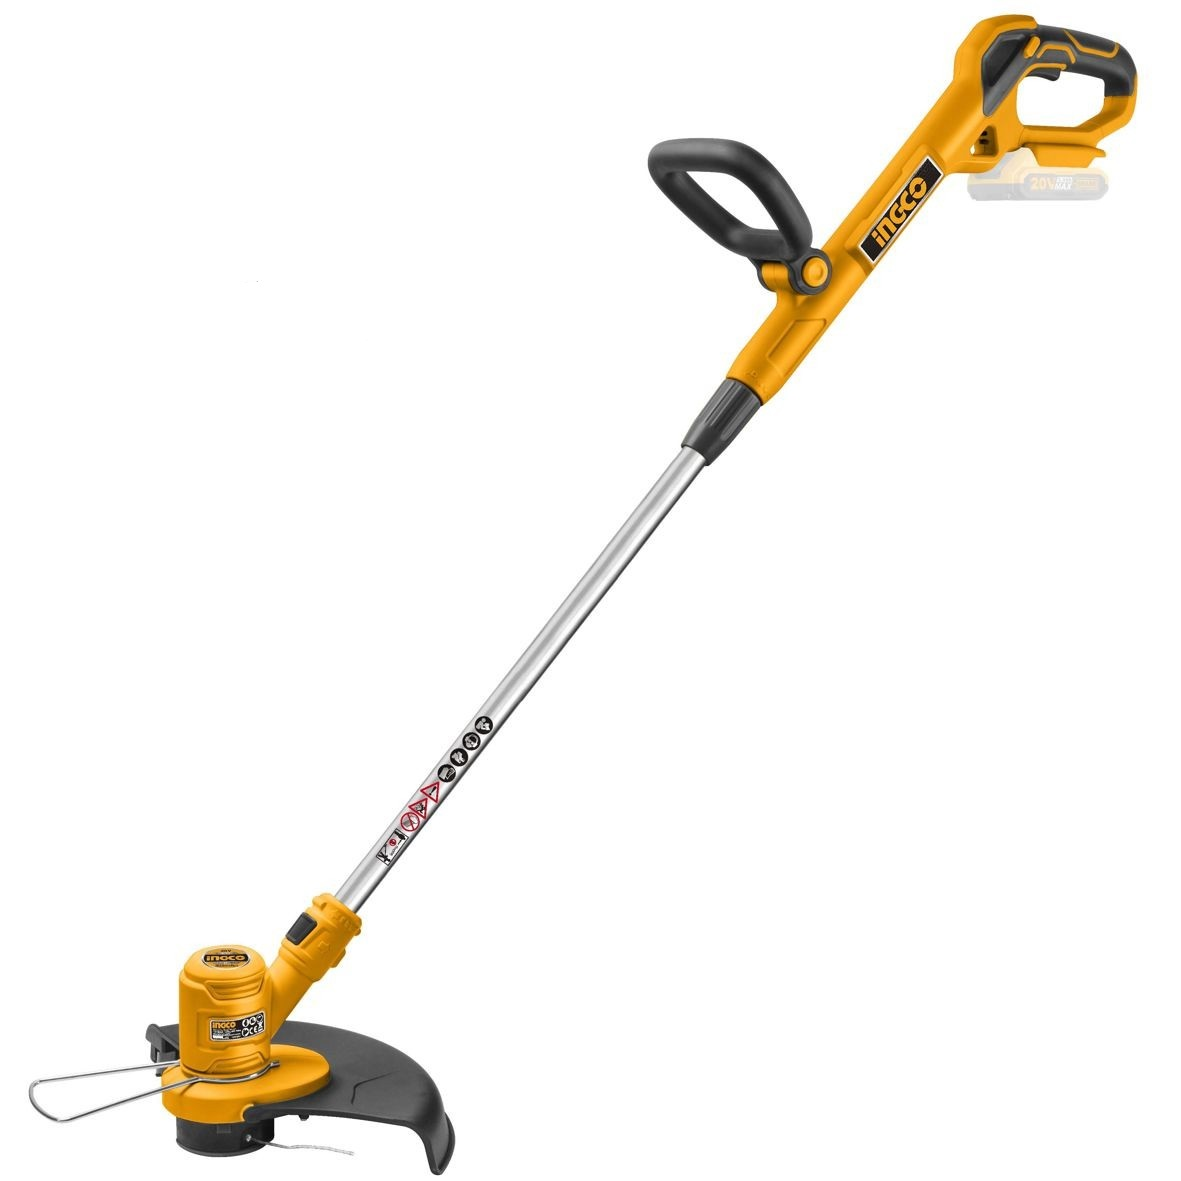 Ingco Cordless Grass Trimmer (Excluding Battery)